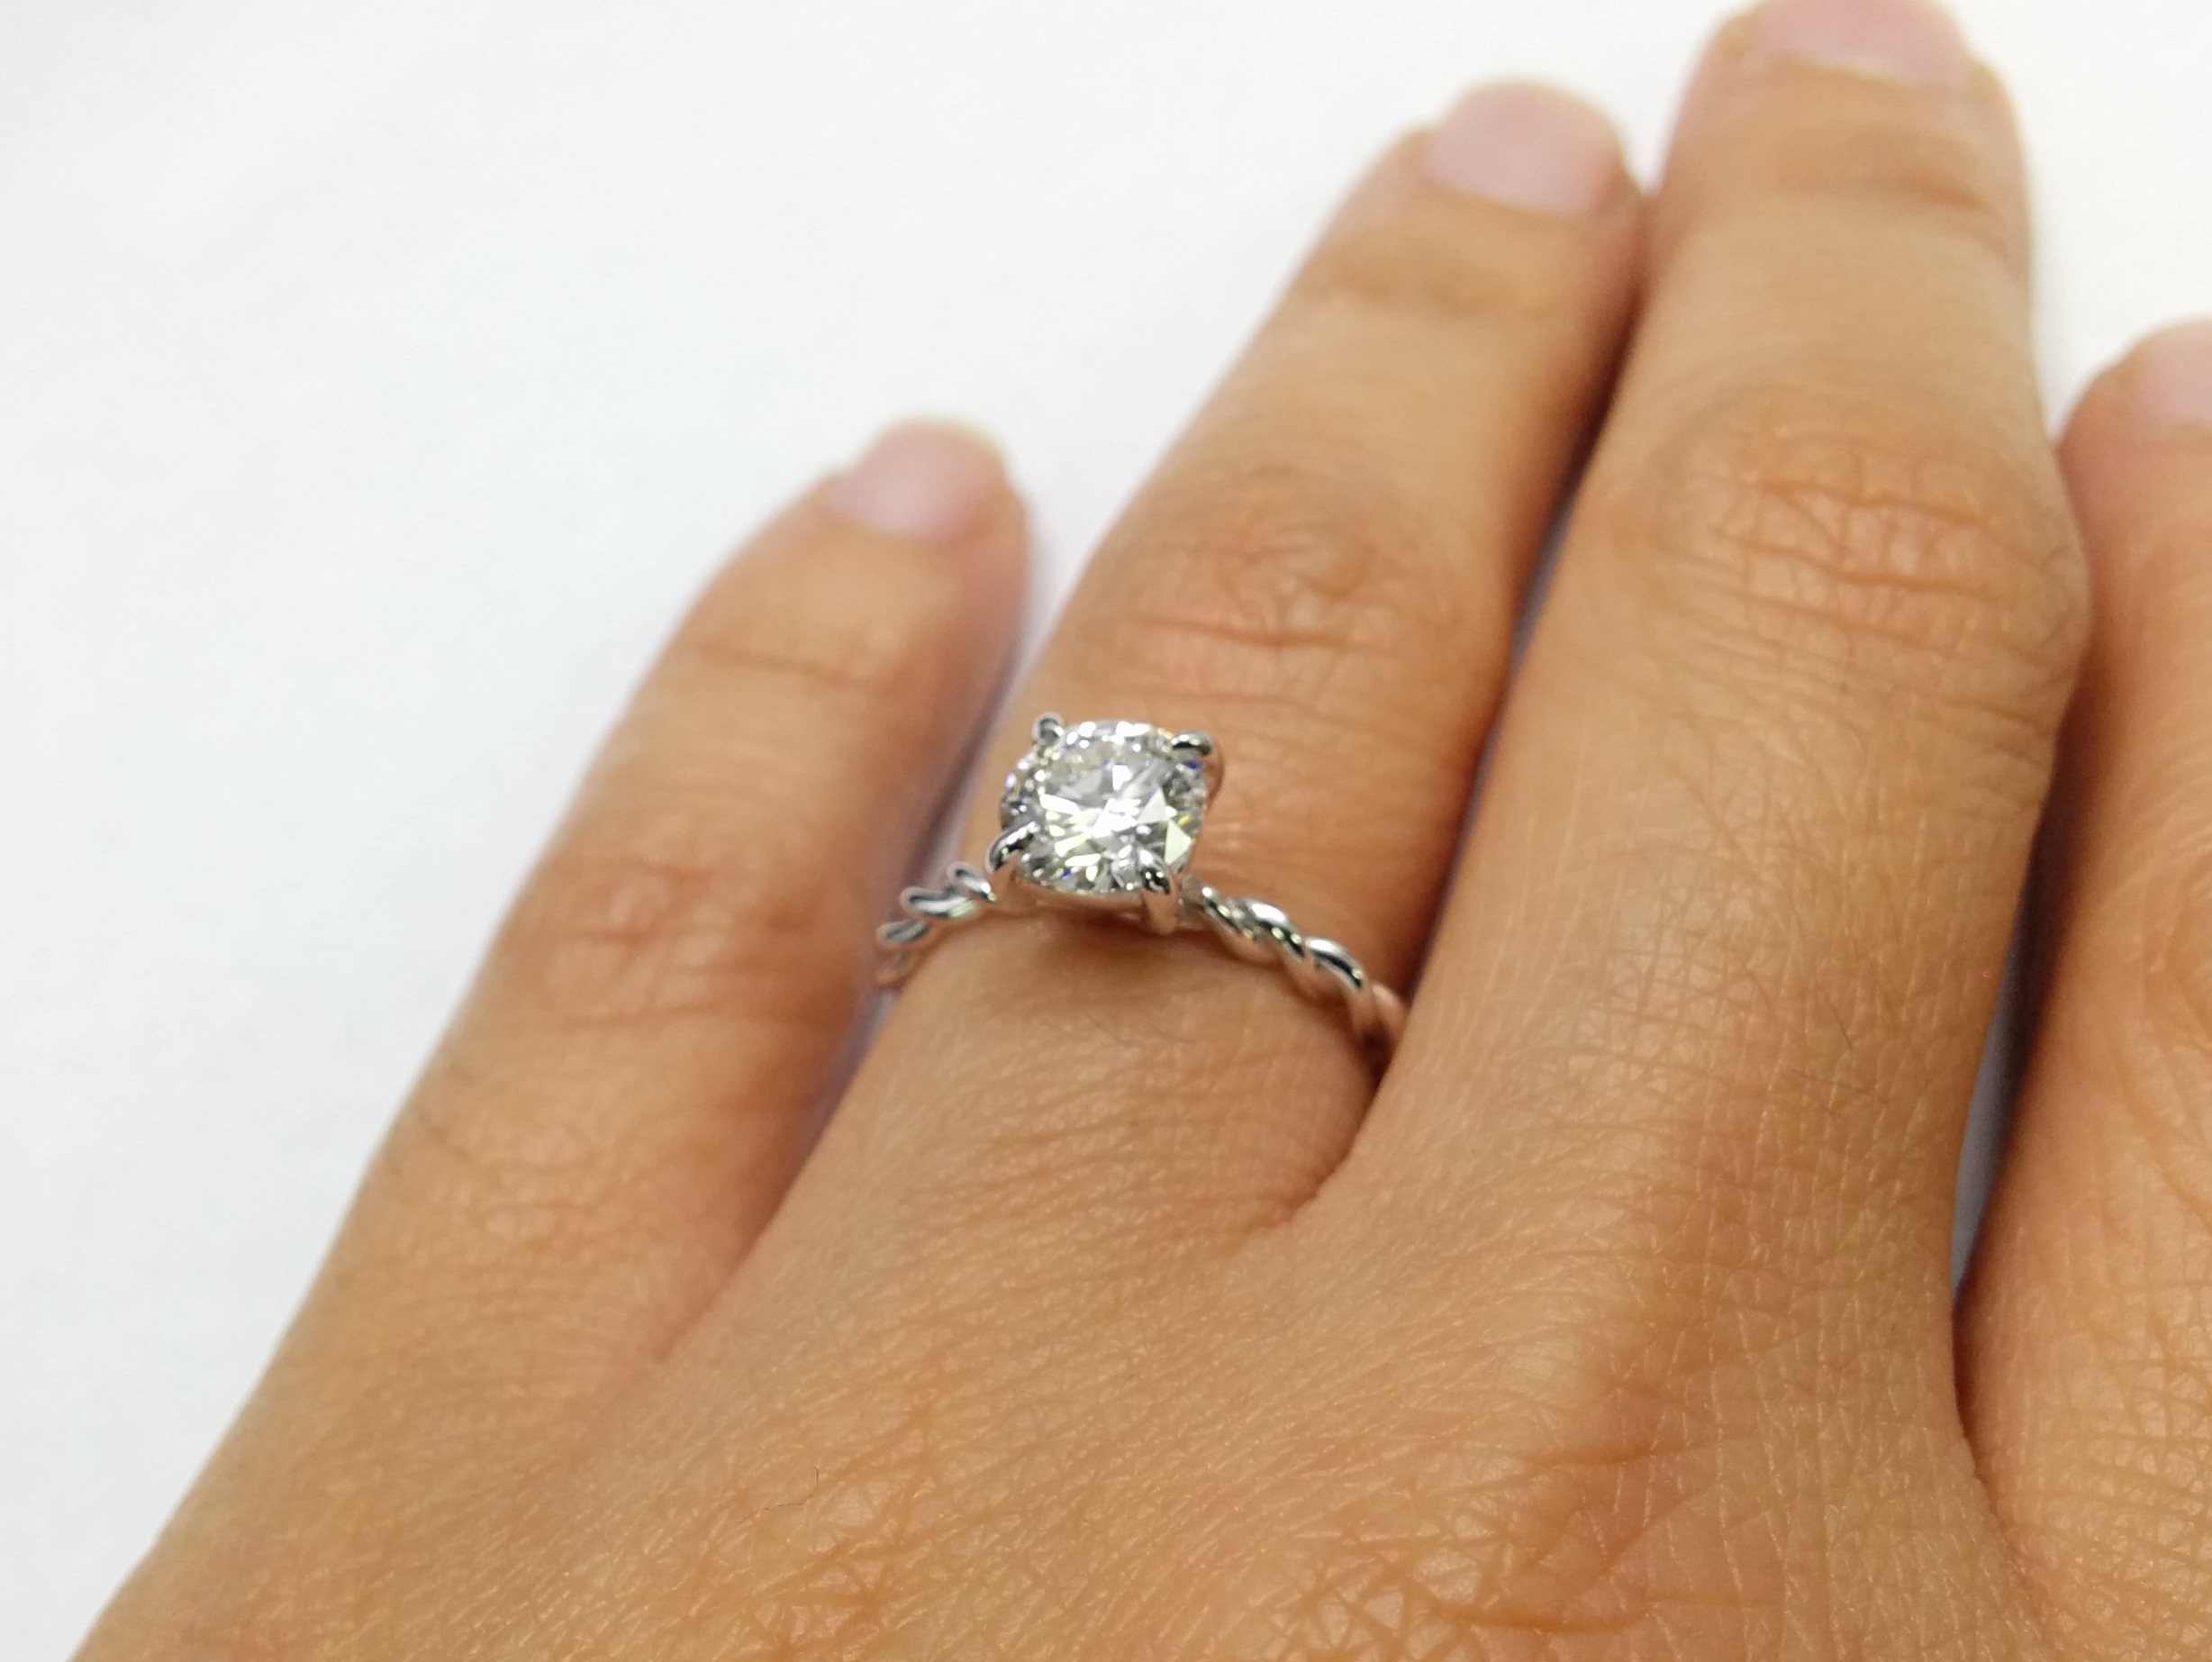 Engagement Ring Woven Solitaire Diamond Engagement Ring in 14K